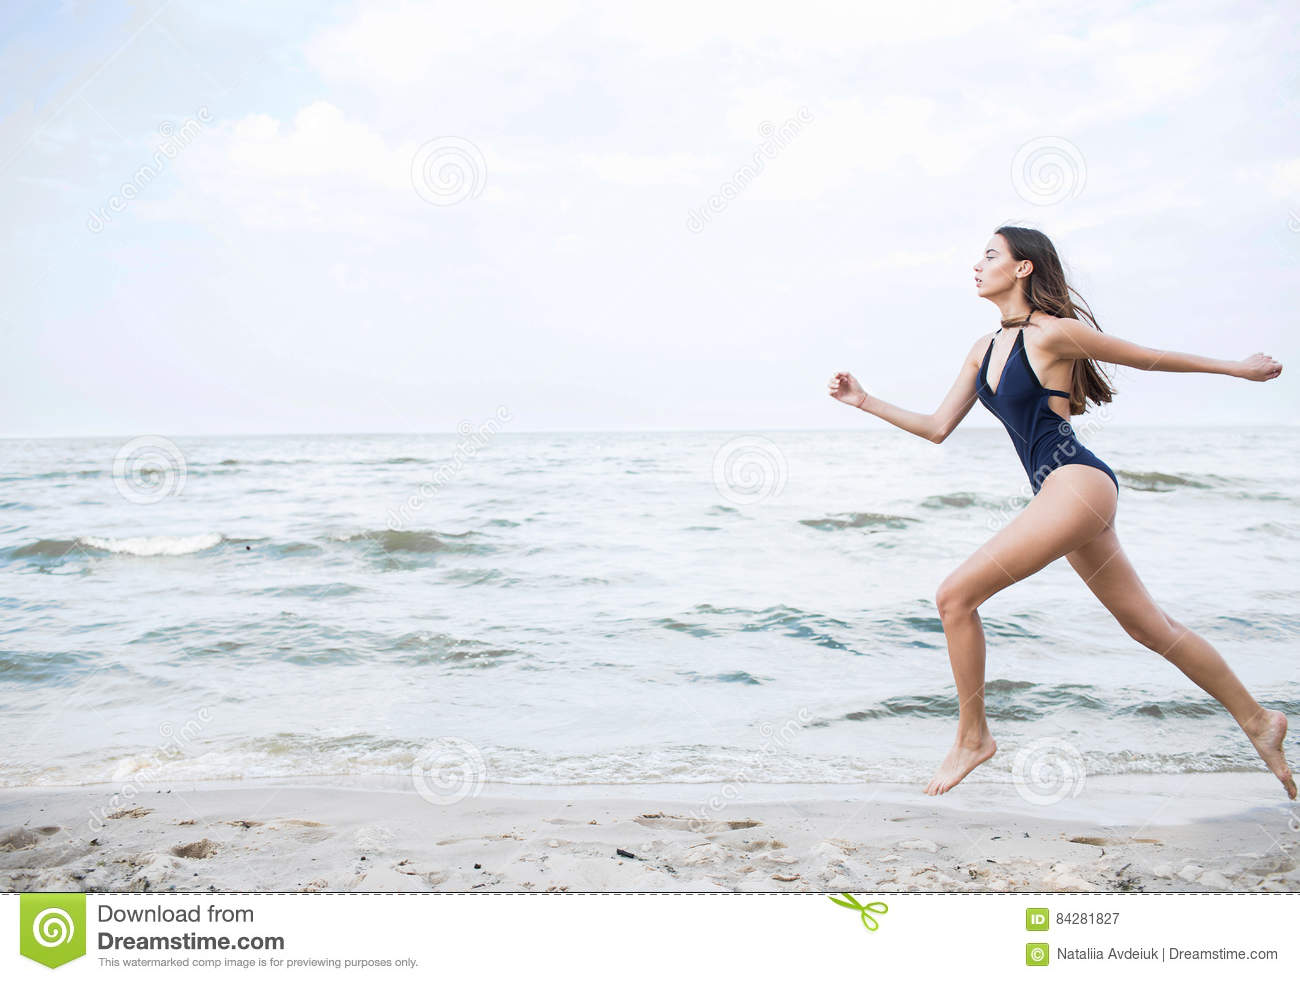 a612245d79 Young sporty woman with dark long hair in a blue bathing suit running on a  beach. Summer photo concept. Sport photo concept.